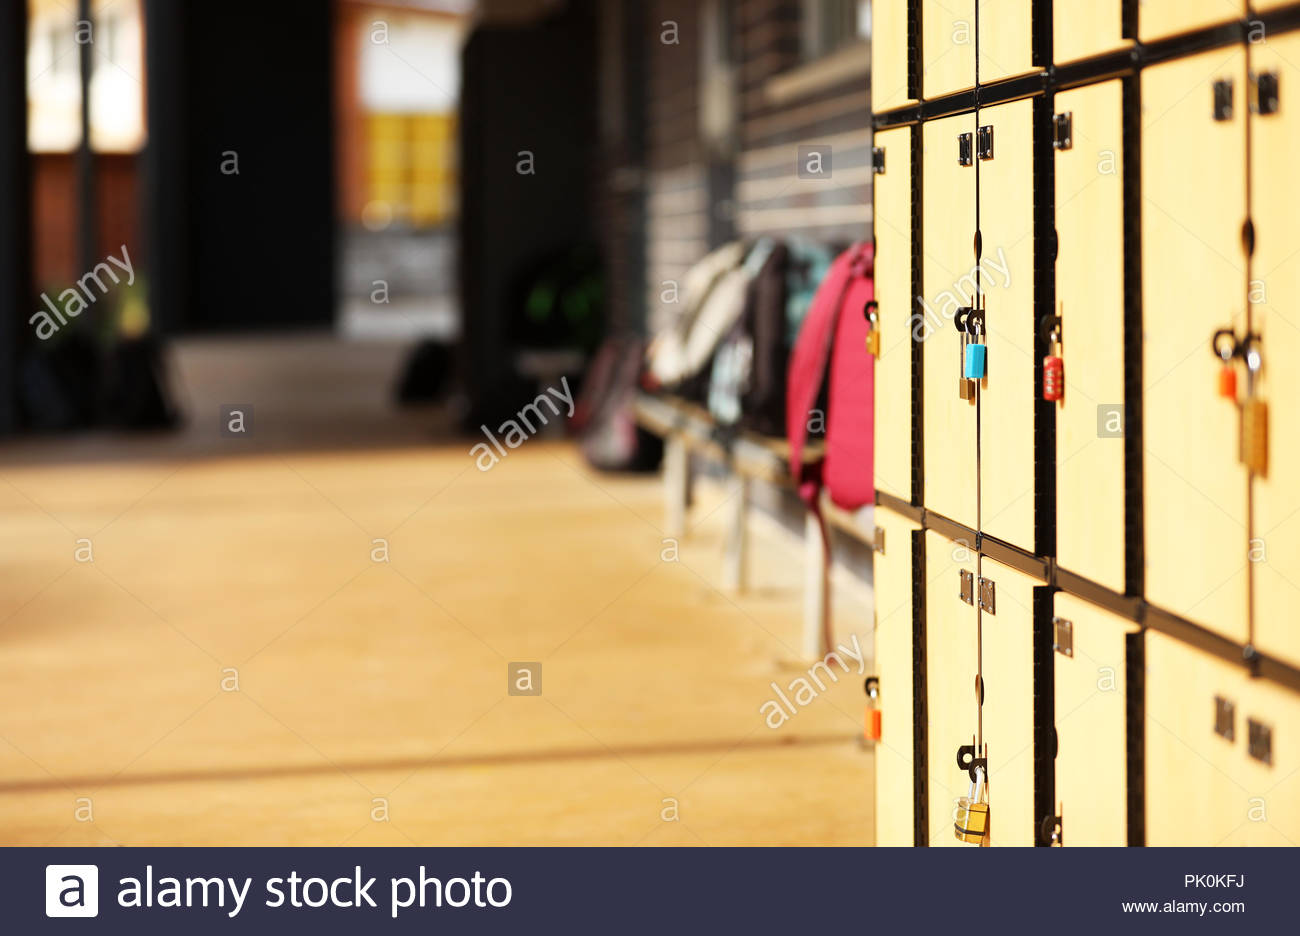 school yard lockers locked with bags backpacks in the background. Education Educational facility institution with classroom and student school bags. - Stock Image